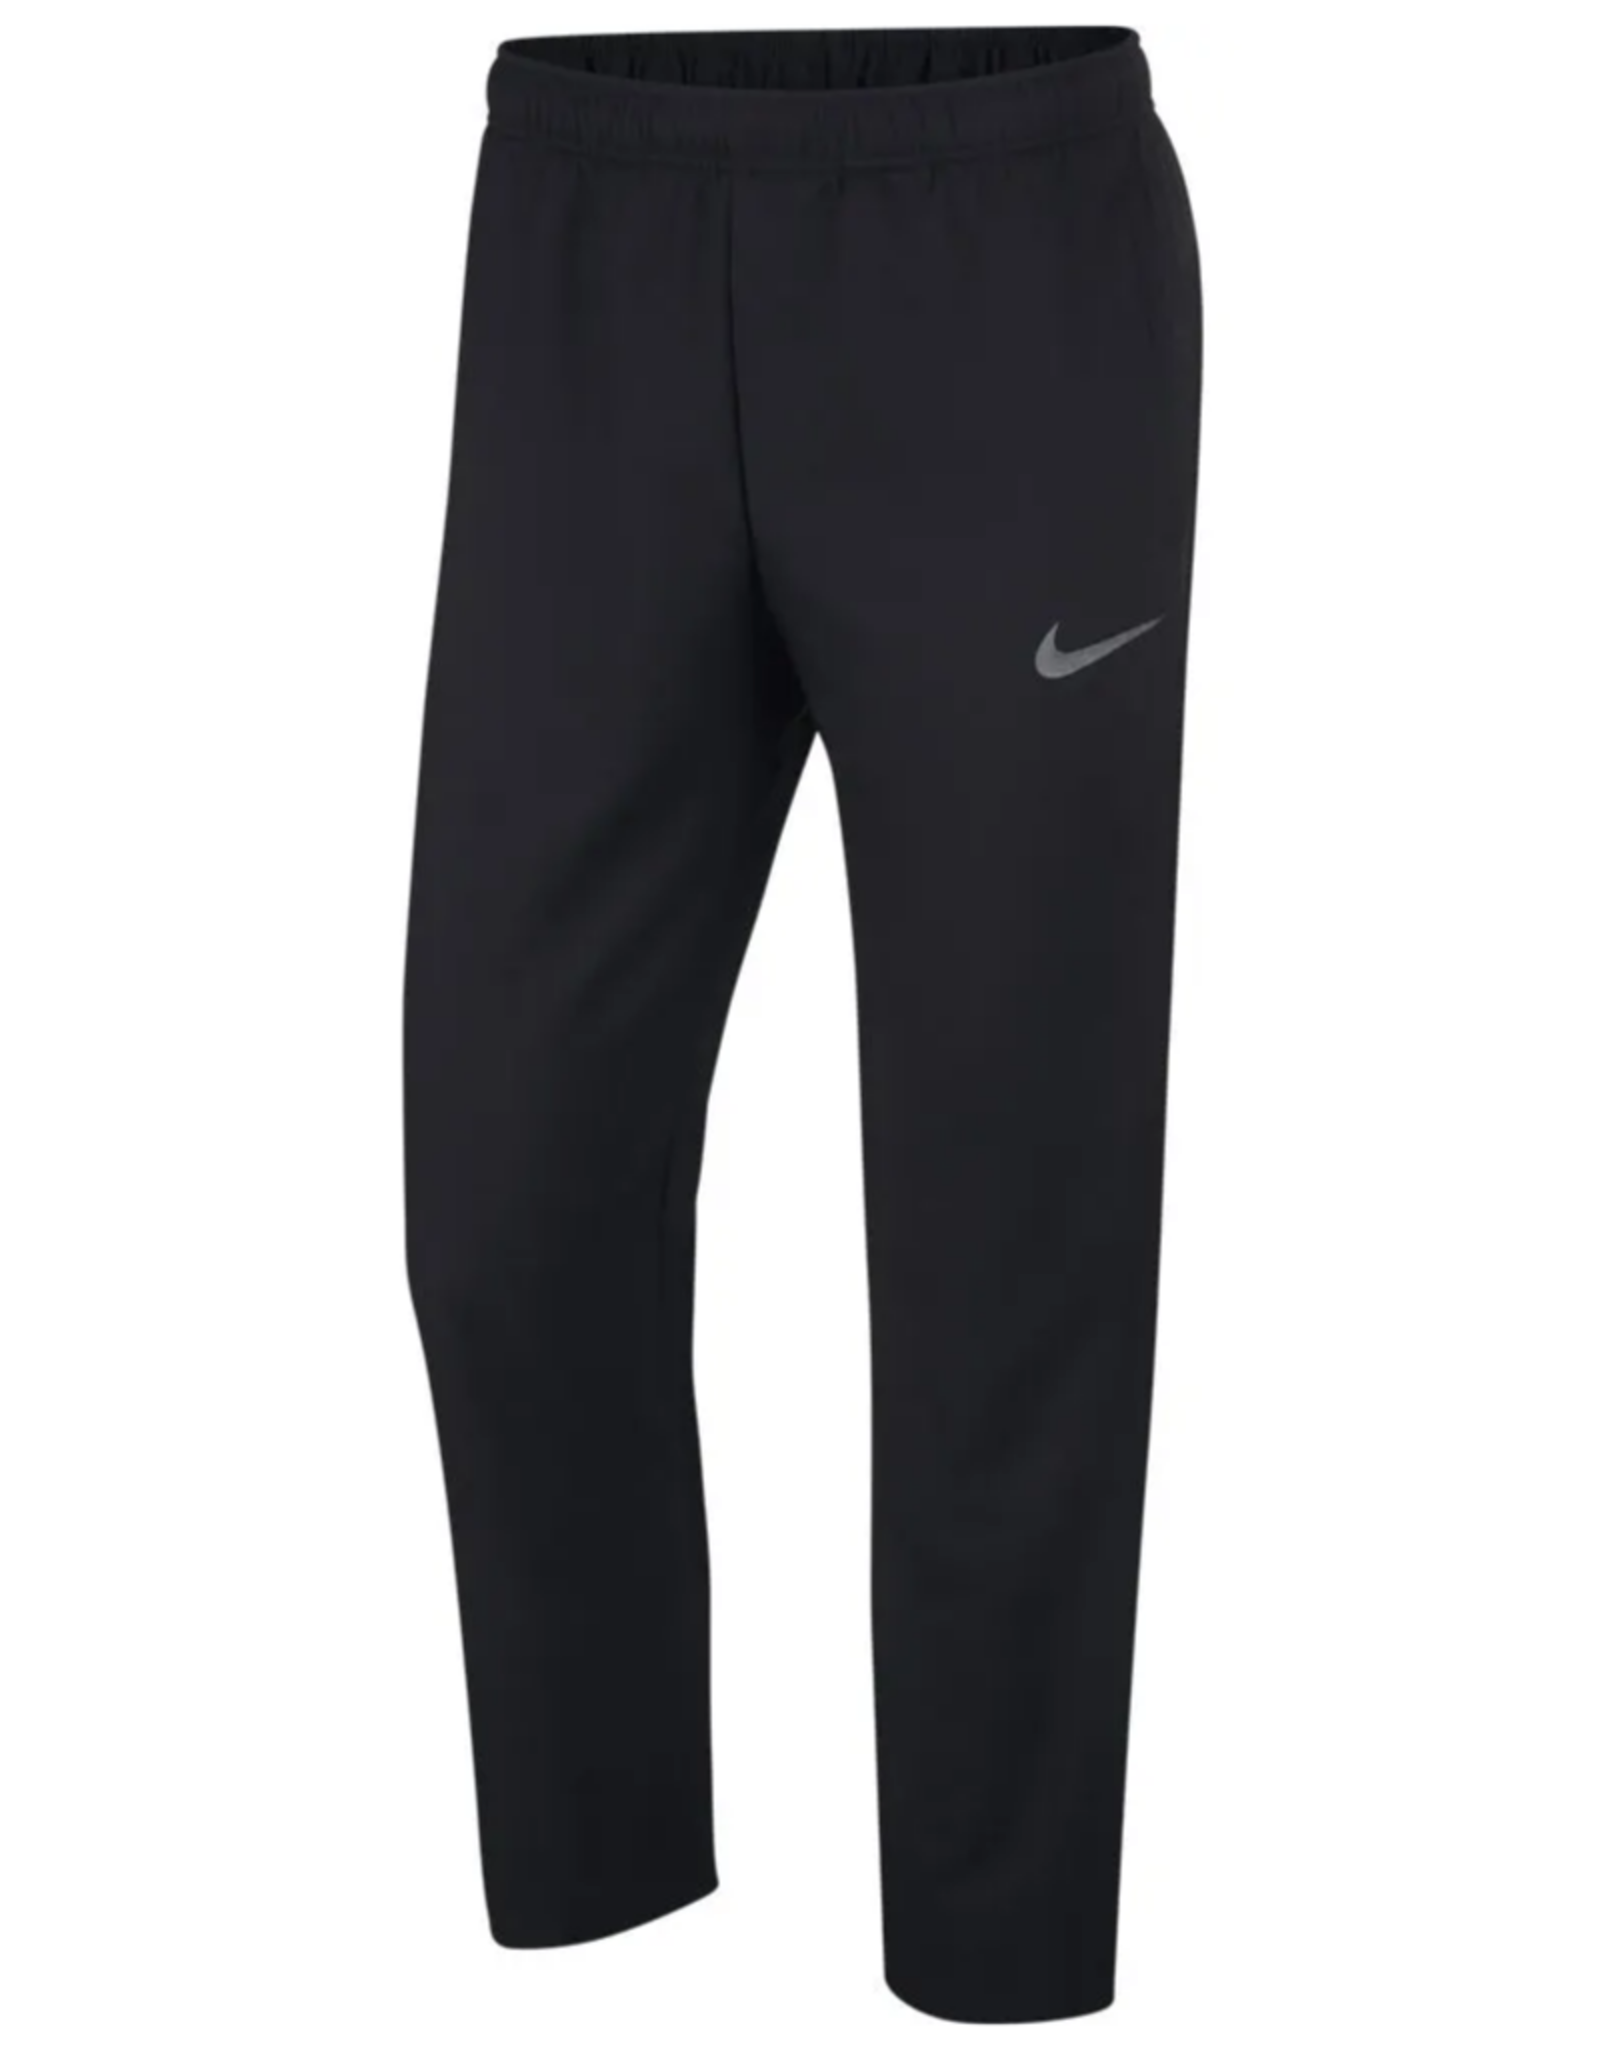 Nike Dry Men's Team Woven Pants Black